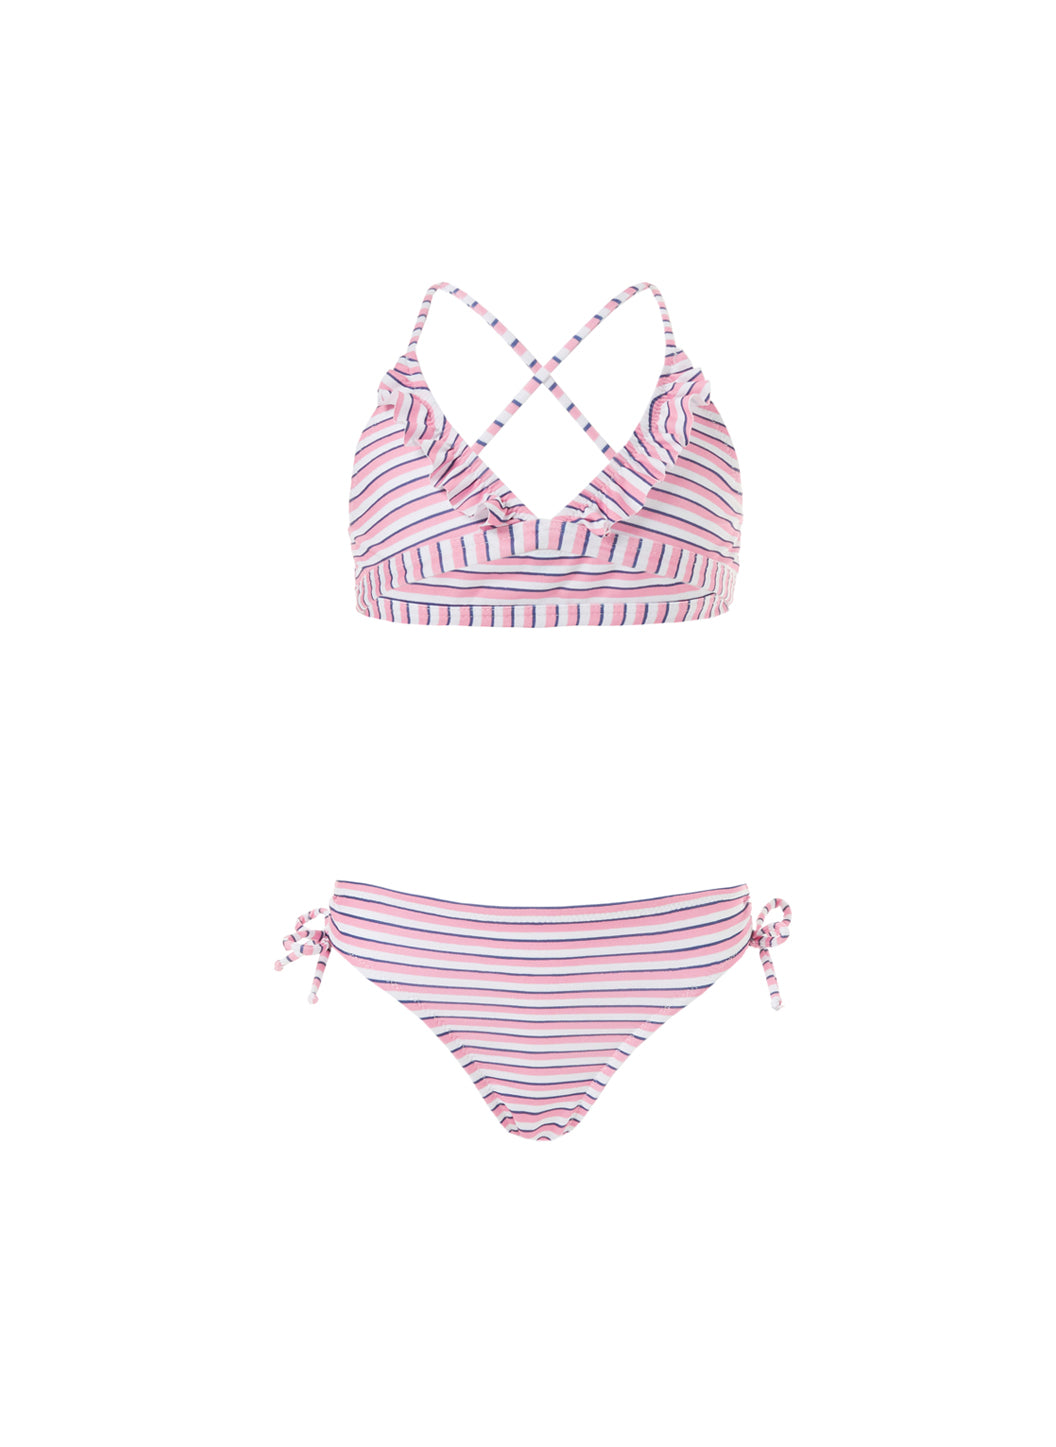 Baby New York Pink Stripe Triangle Bikini